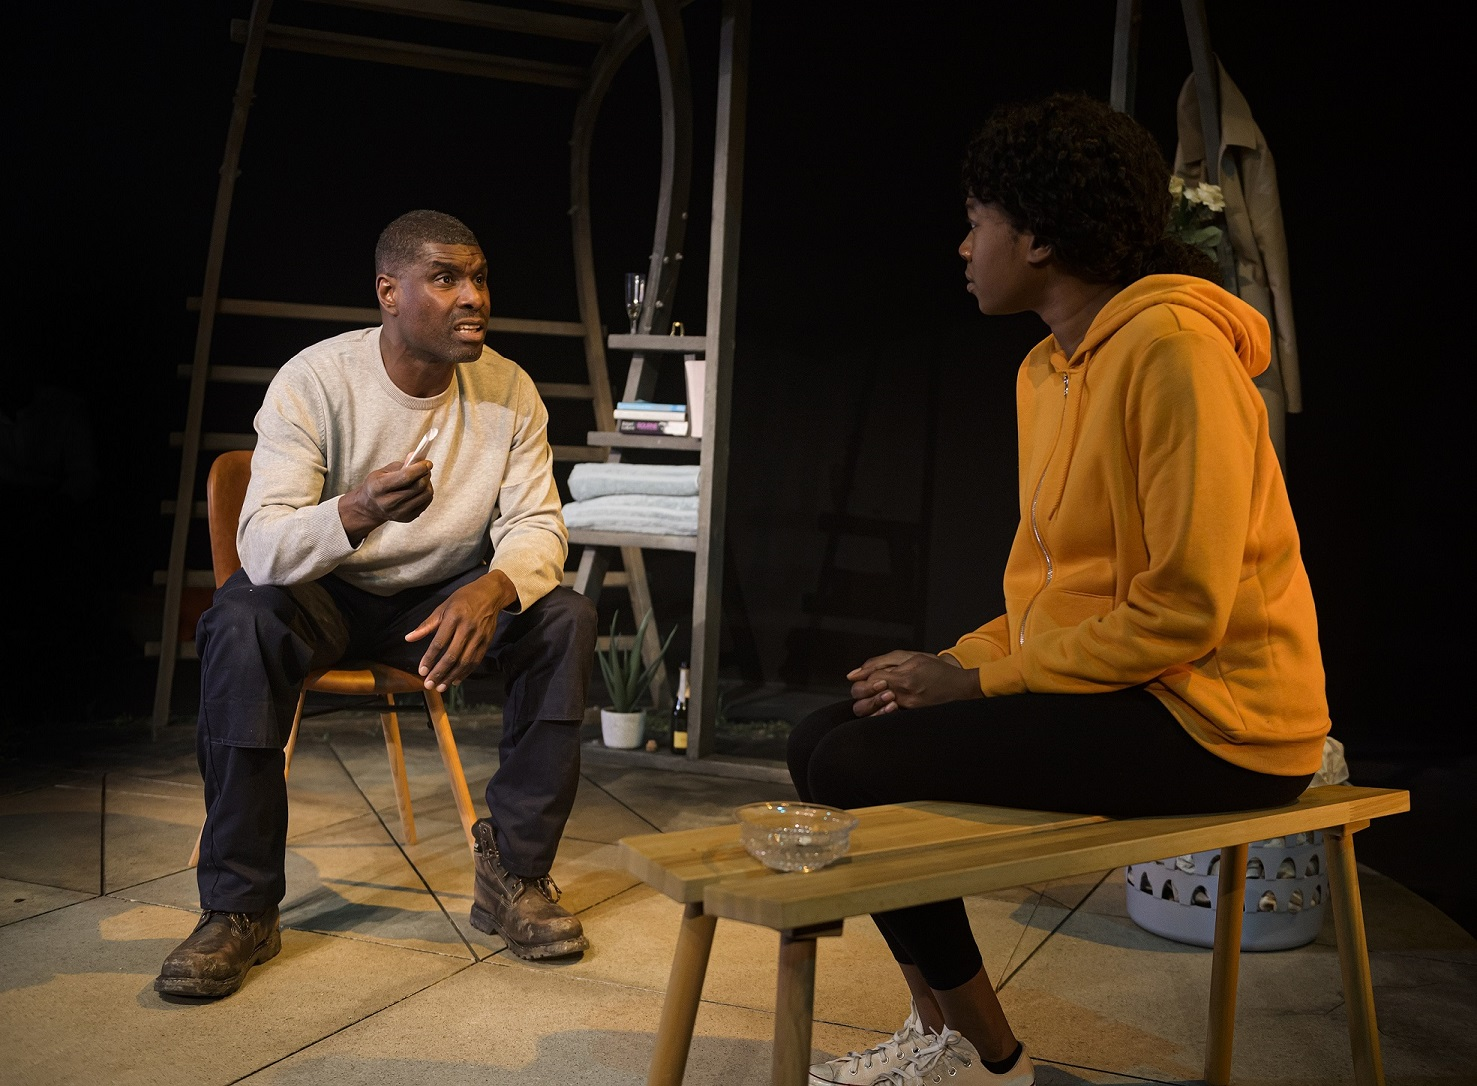 Stanley J Browne and Evlyne Oyedokun in One Under at Live Theatre, Newcastle. Design, Amelia Jane Hankin; lighting design, Tanya Joelle Stephenson. Photo: Patrick Baldwin.